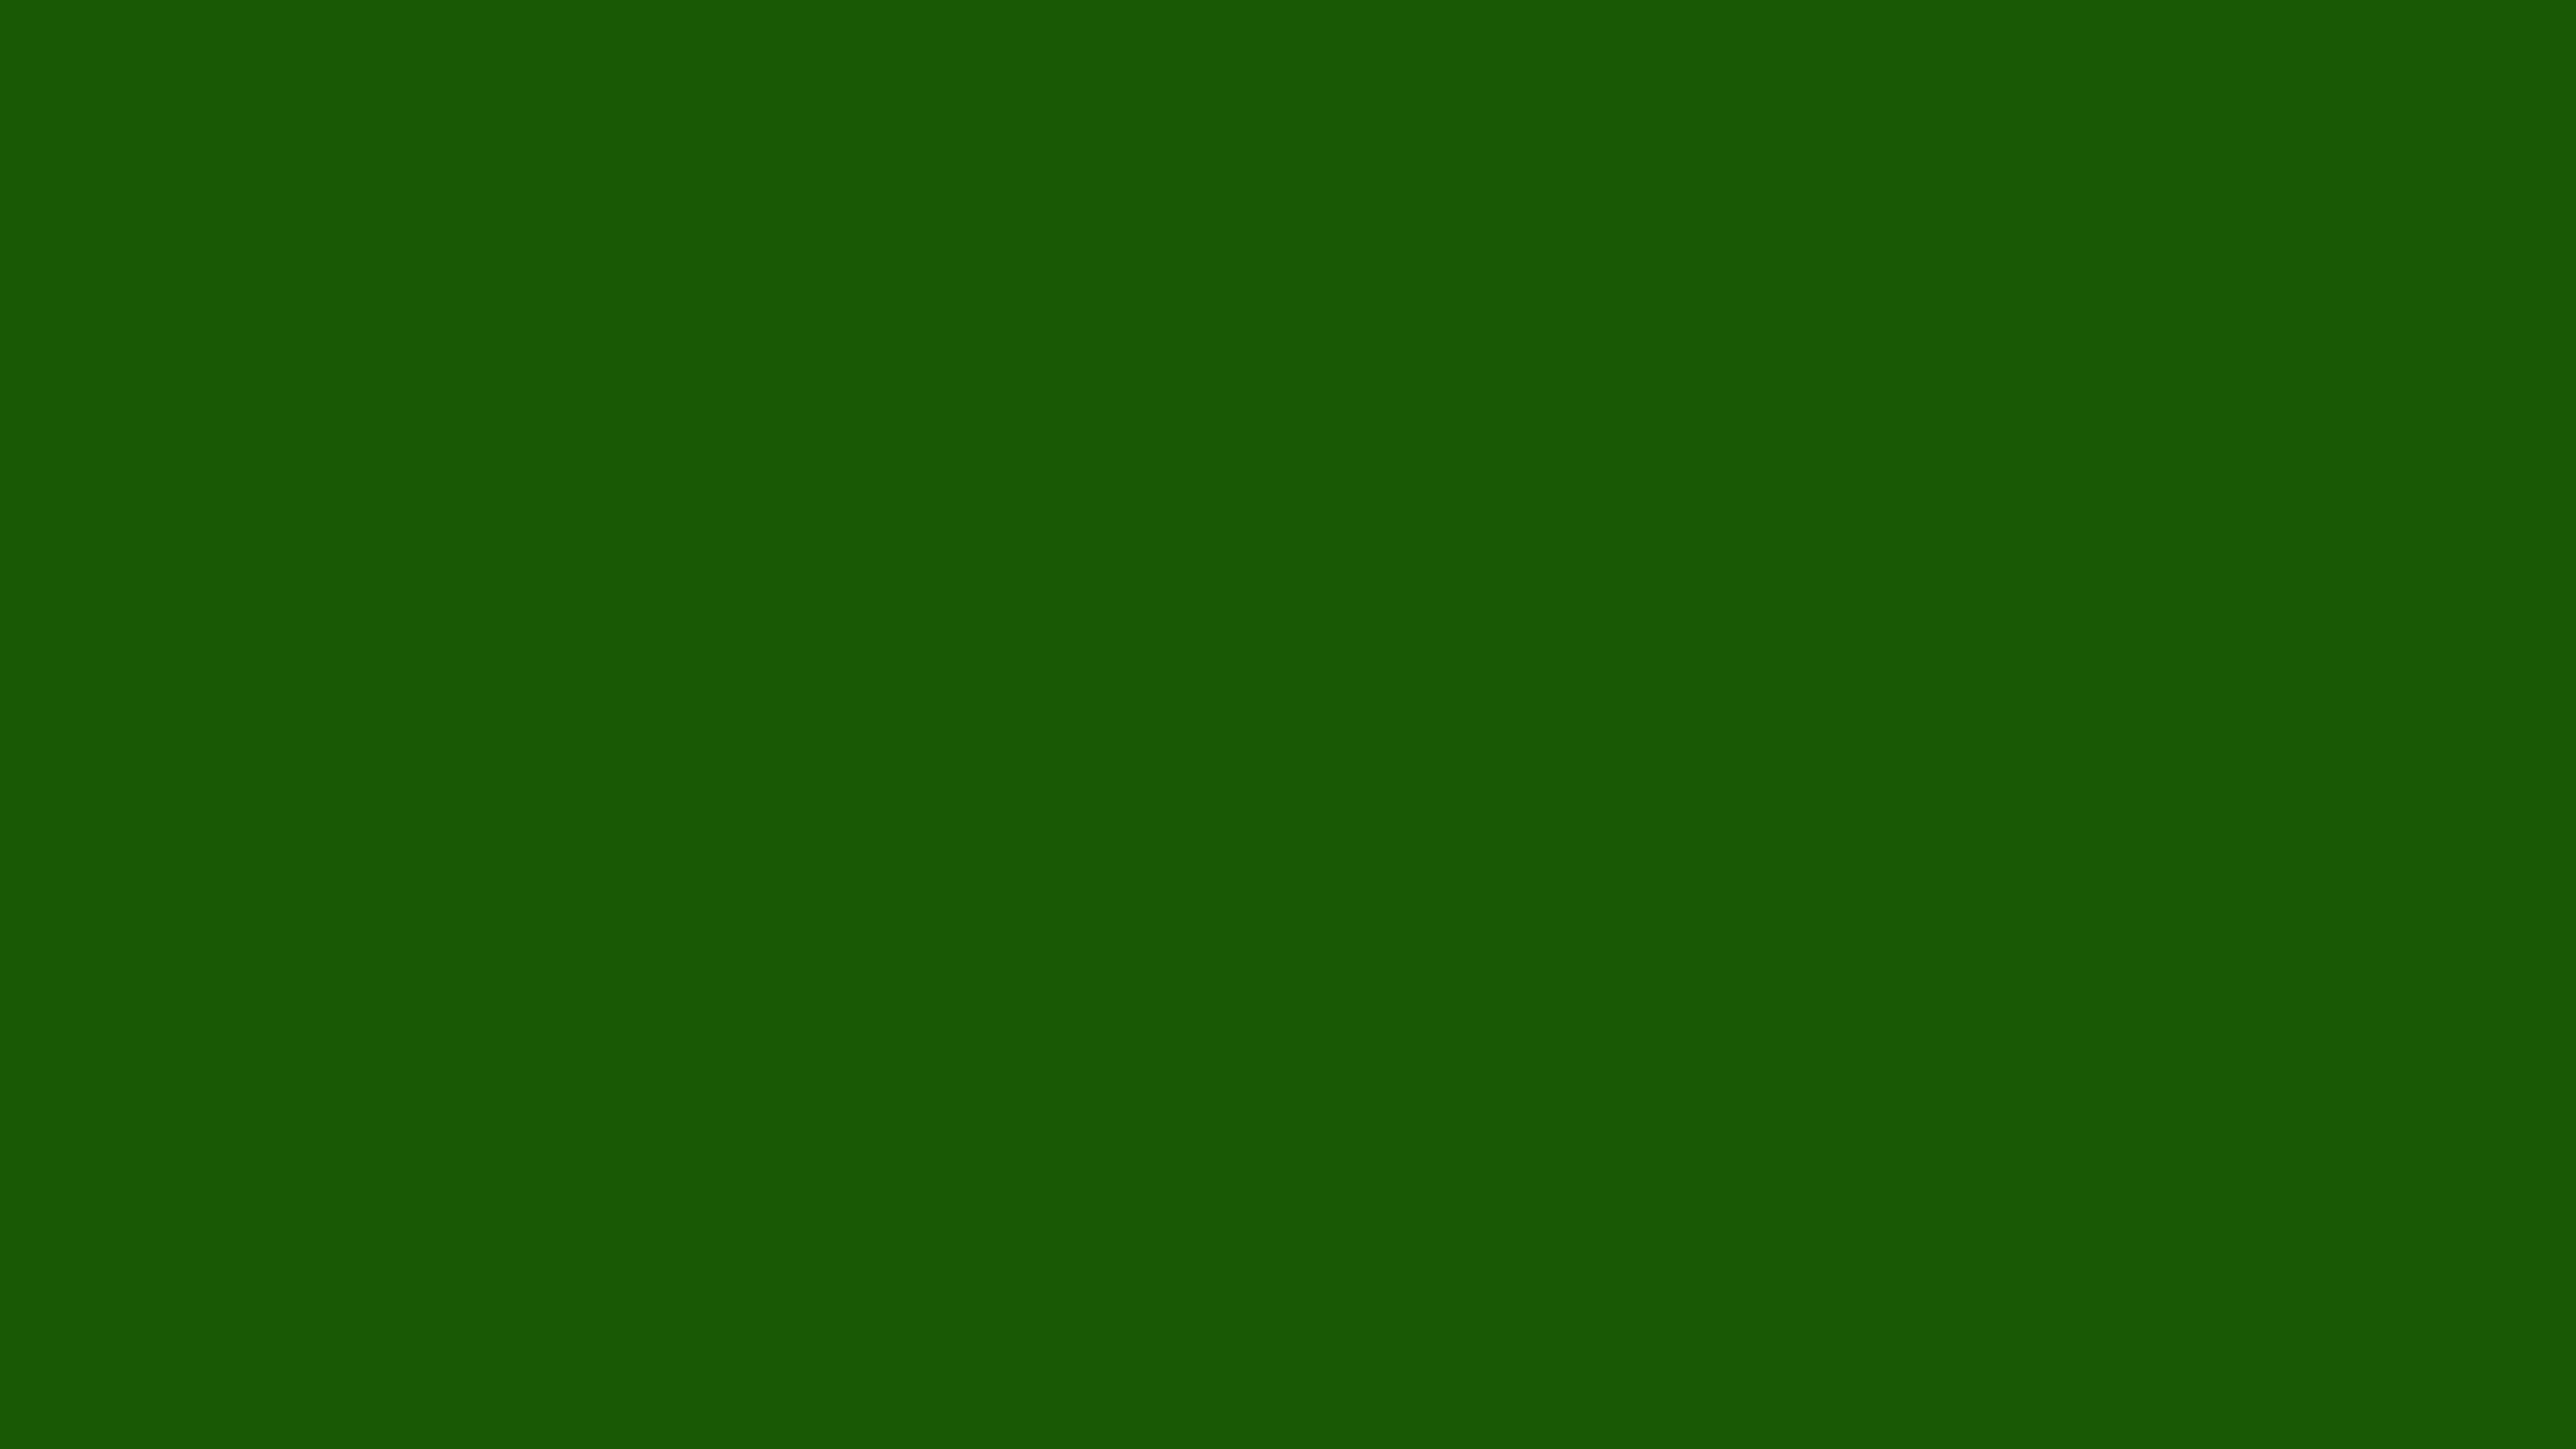 3840x2160 Lincoln Green Solid Color Background